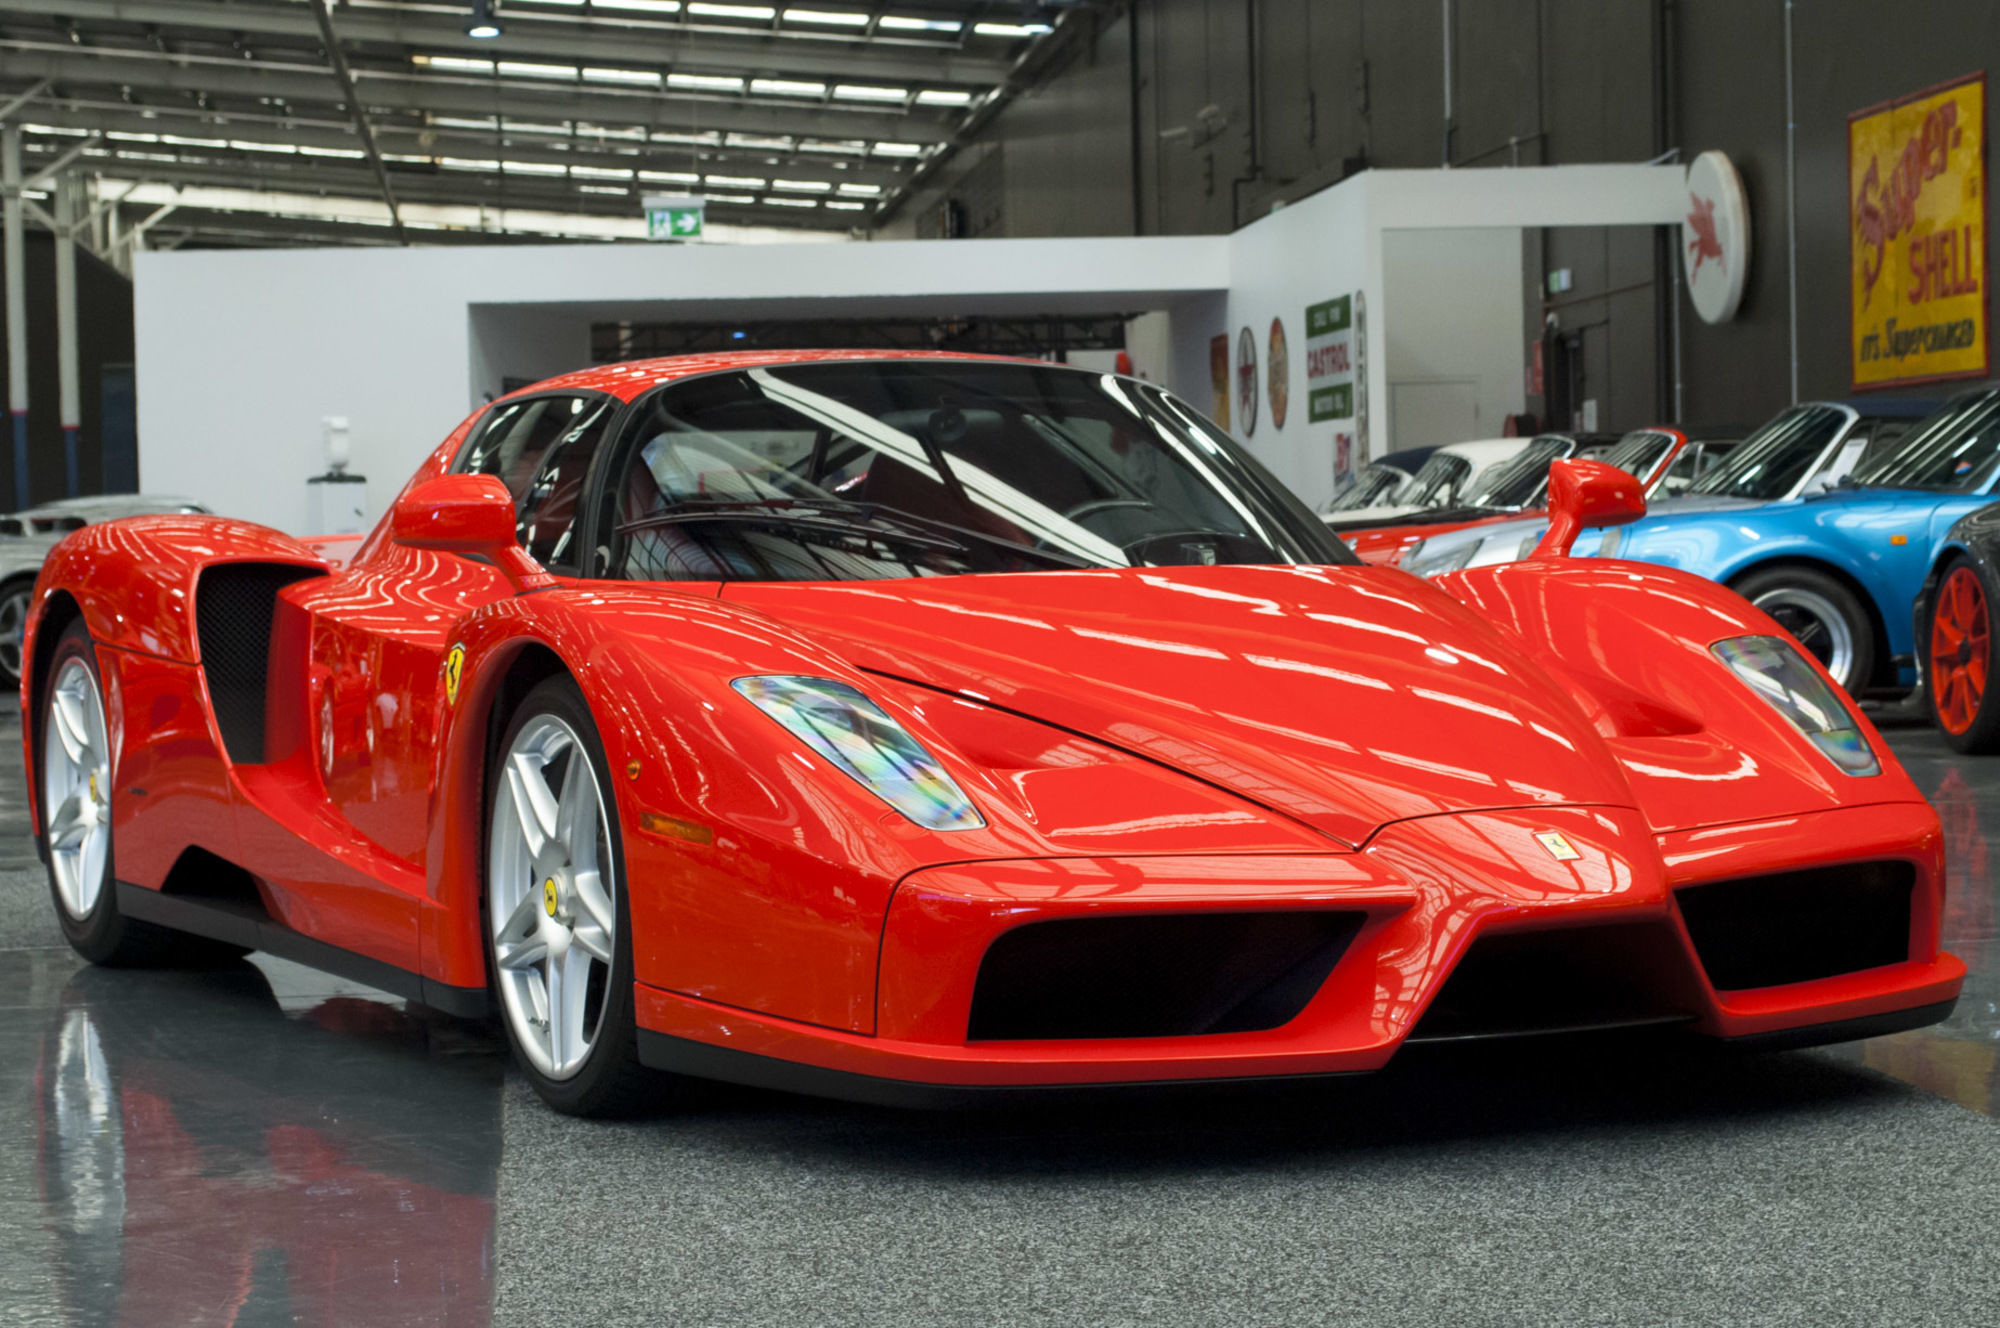 2000x1328 Ferrari Enzo HD wallpapers #1